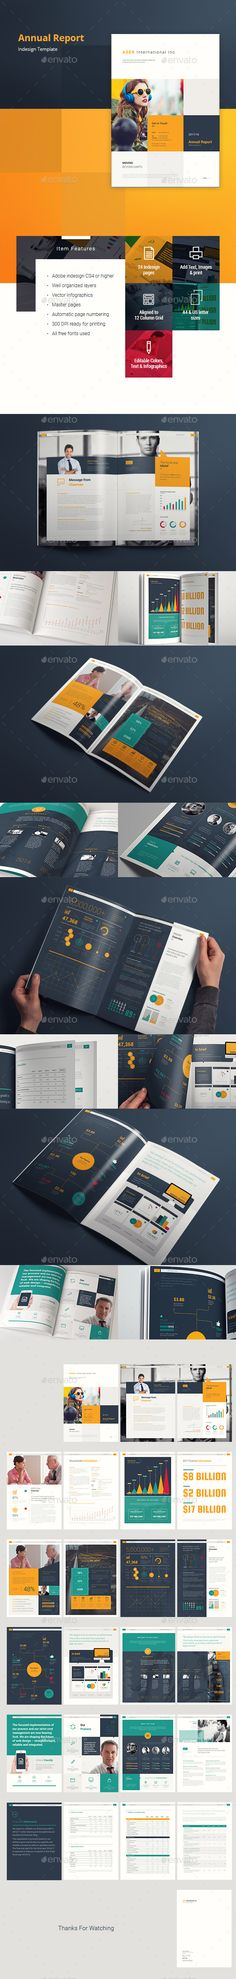 #ASER #Creative #Corporate #Modern #Professional #Annual #Report #Template - #Company #business #Brochures #Design. Download here: https://graphicriver.net/item/aser-annual-report/19869446?ref=yinkira